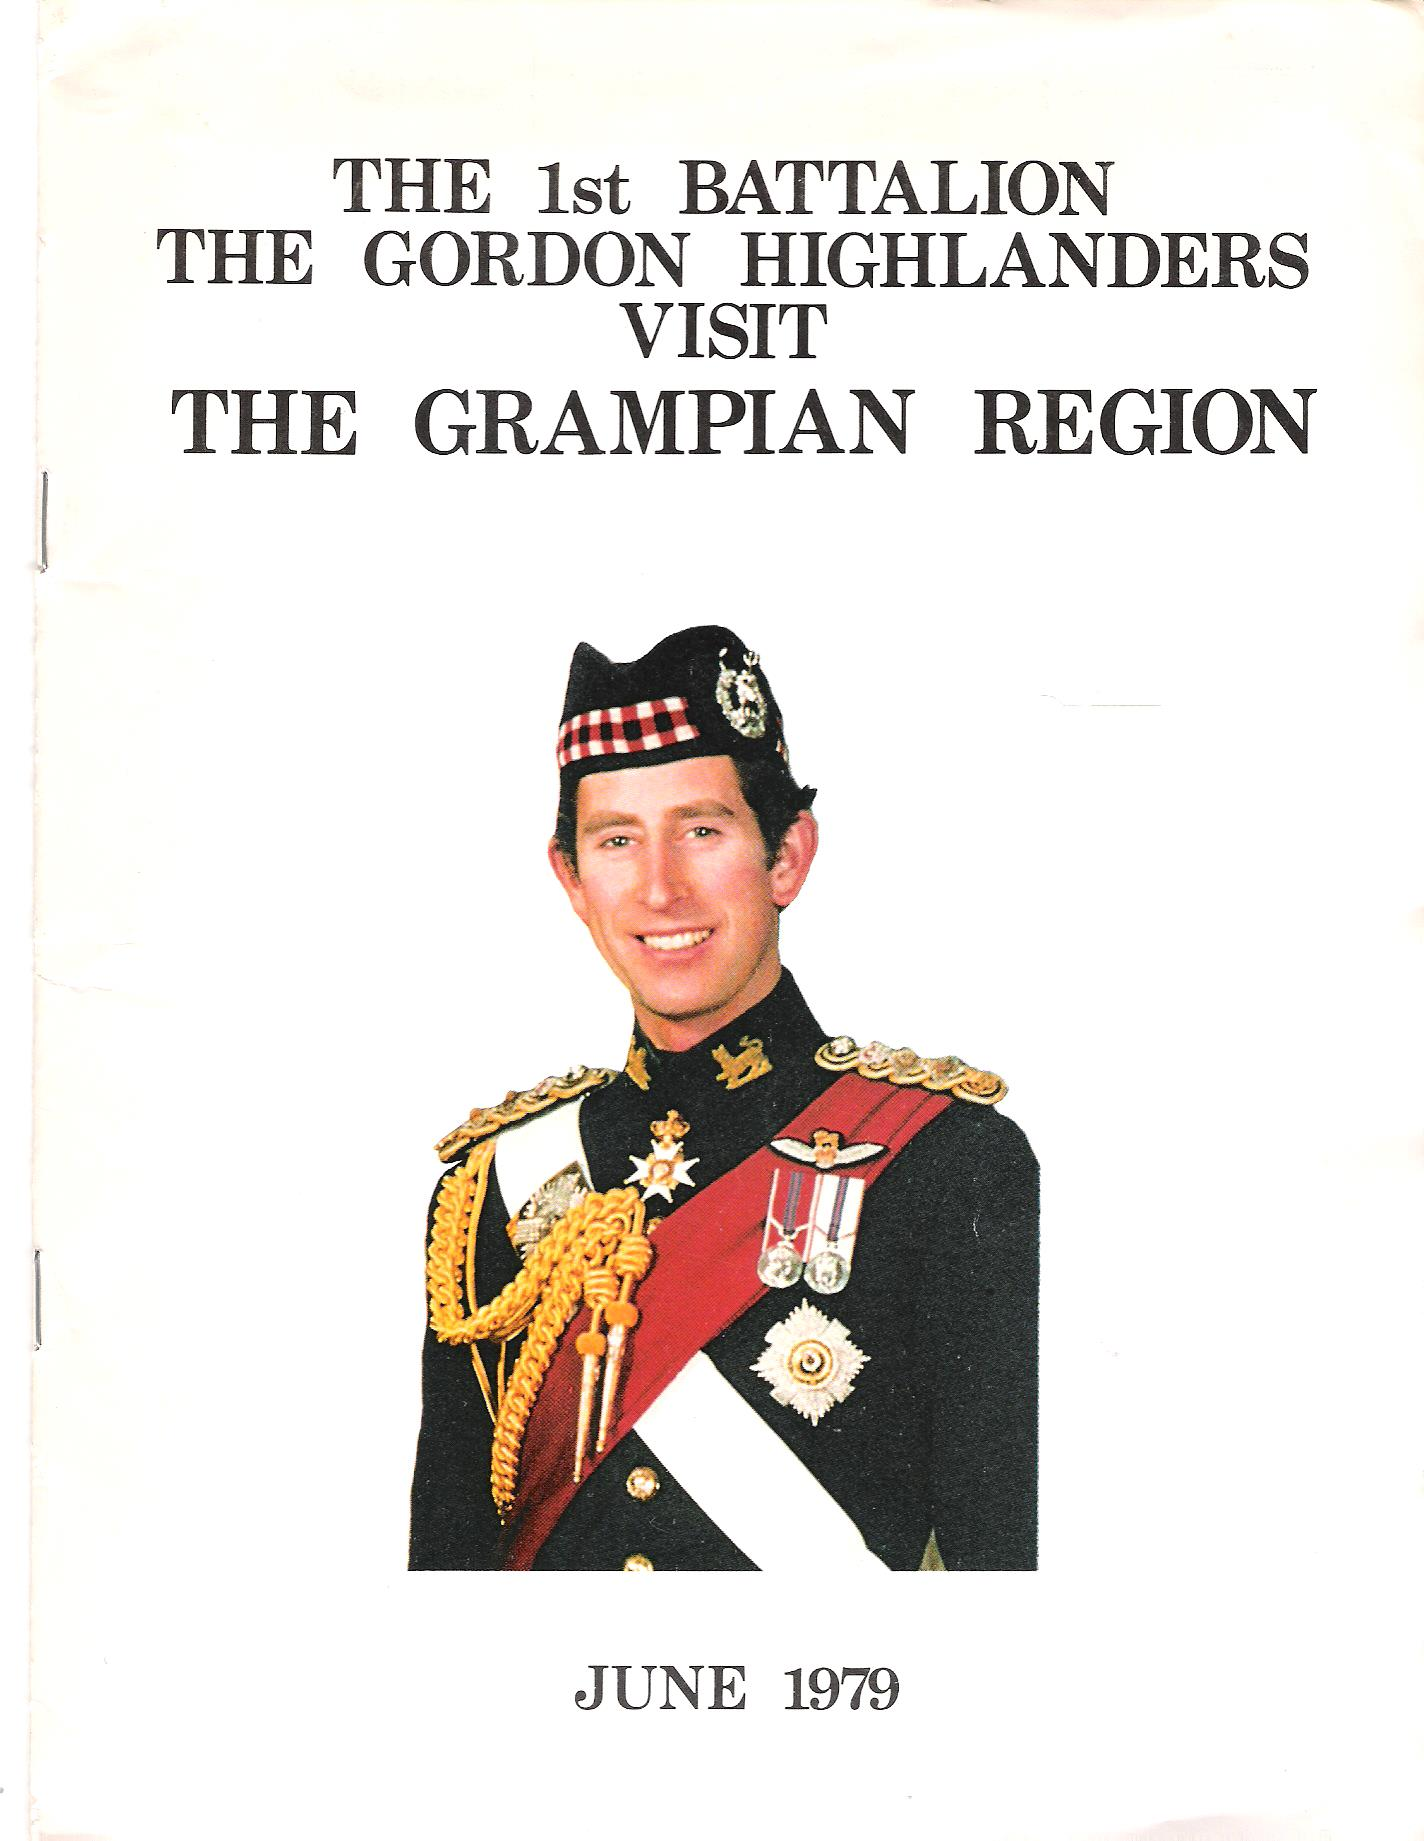 Image for The 1st Batallion The Gordon Highlanders Visit the Grampian Region.